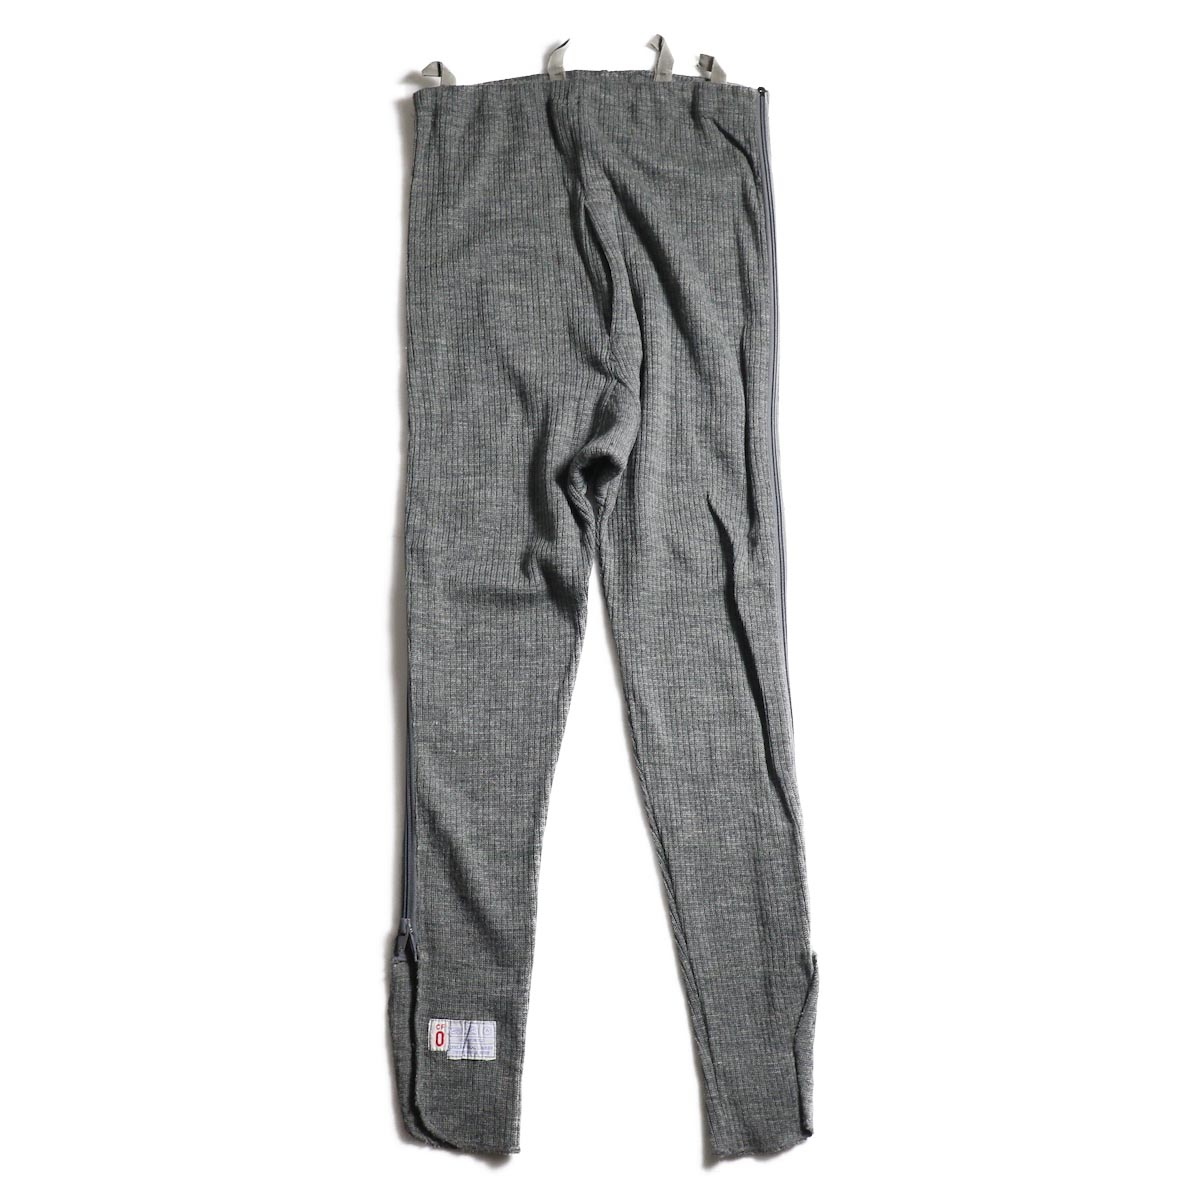 Denmark Military / Side Zip Under Pants (Small) F